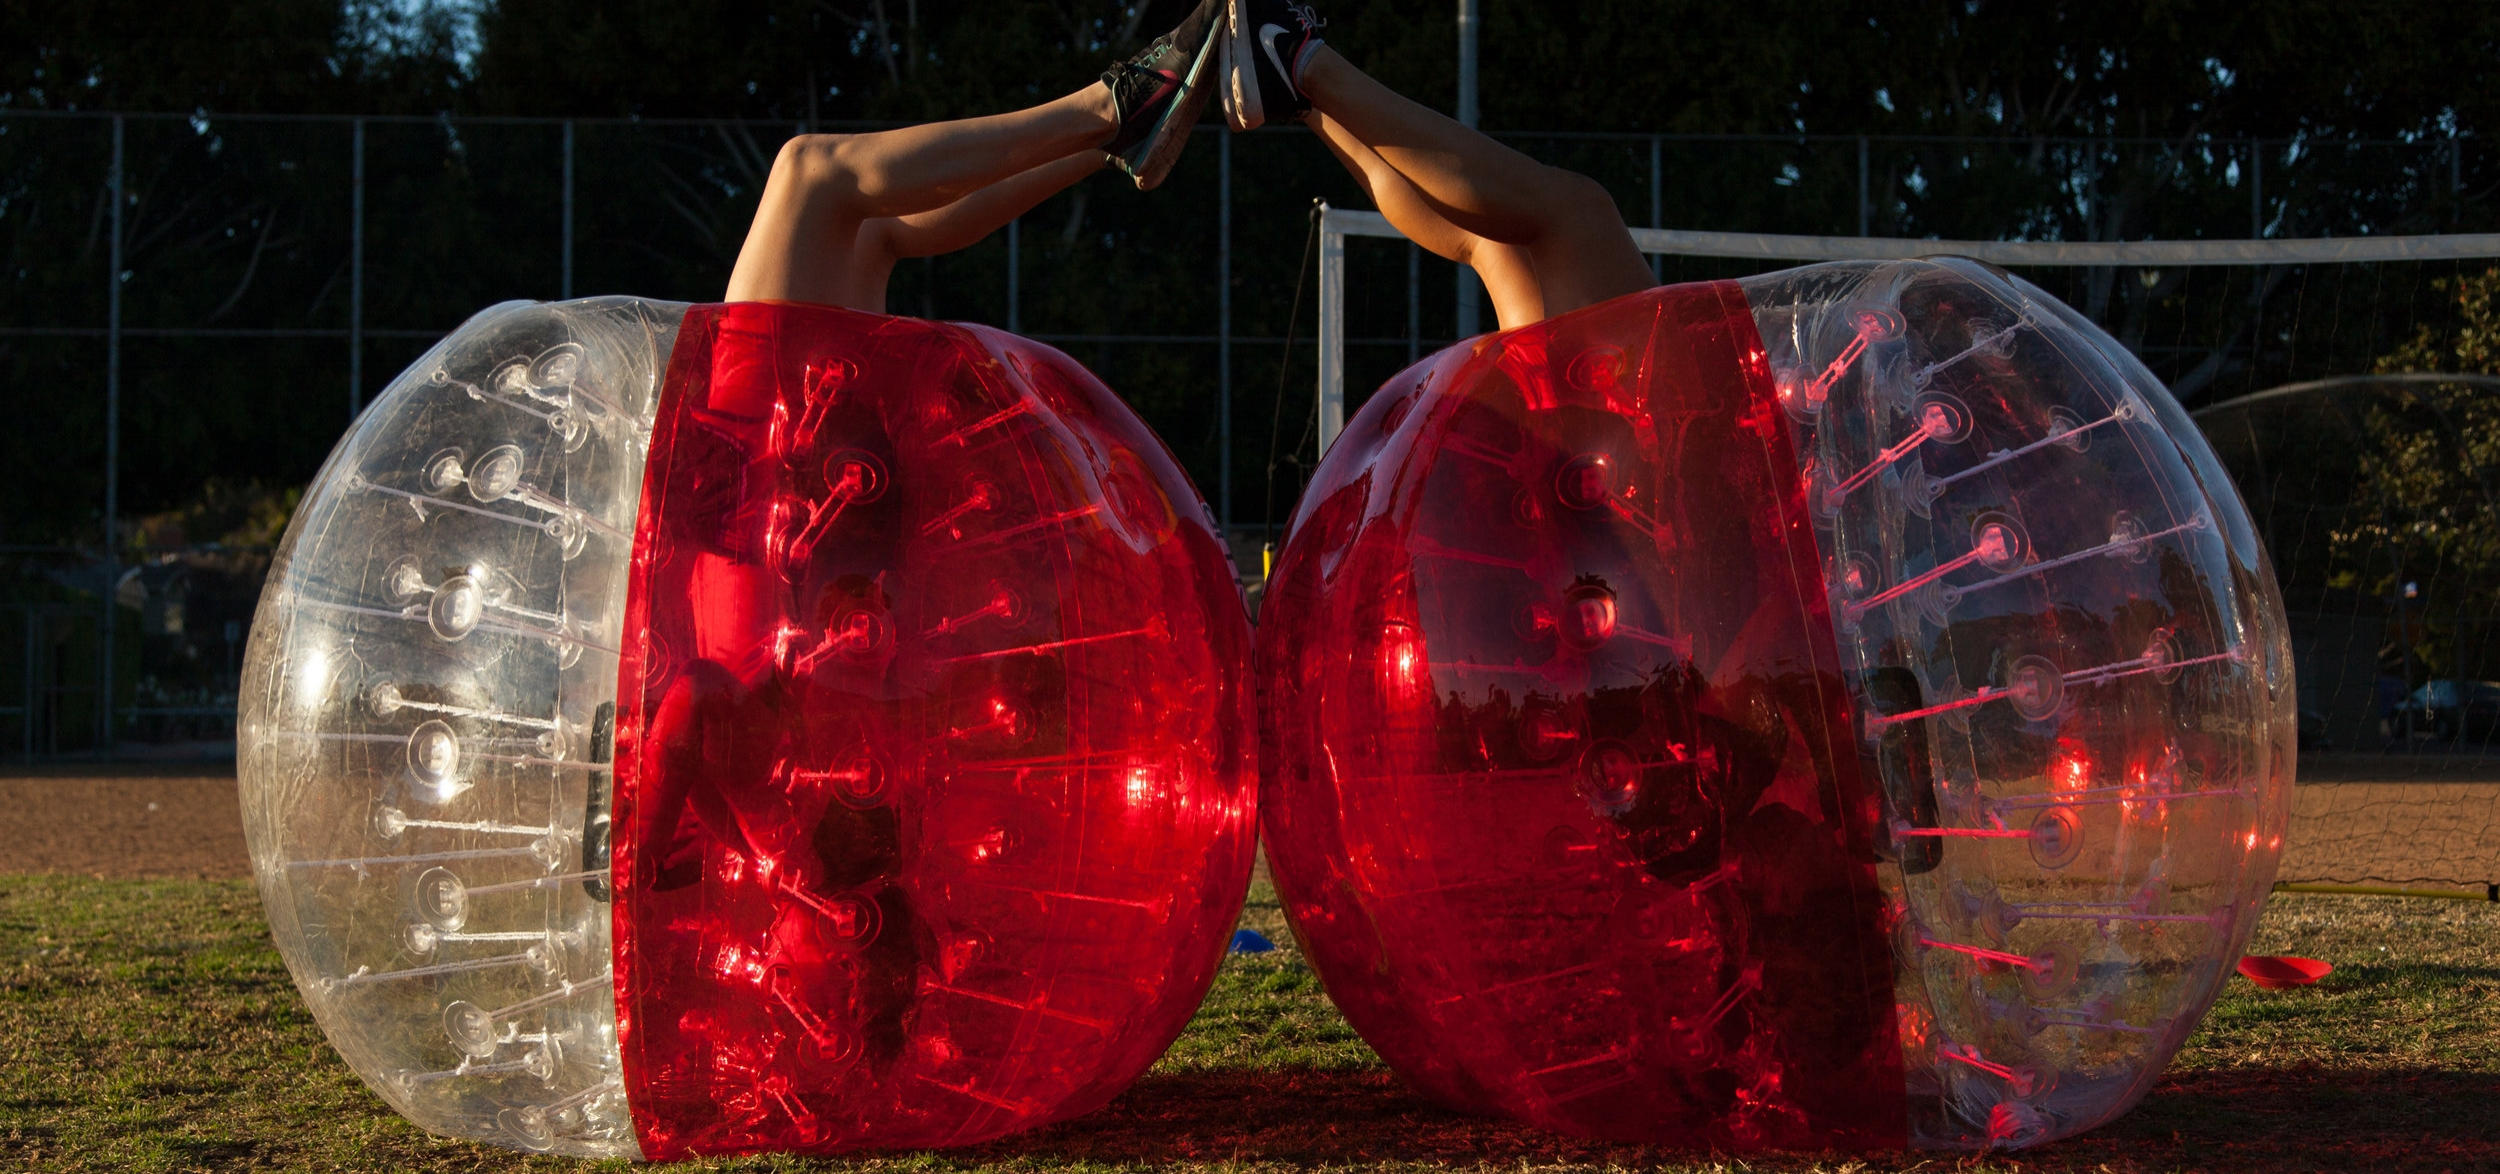 LEARN MORE  - Want to know more about Bubble Soccer, check out our Learn More section.